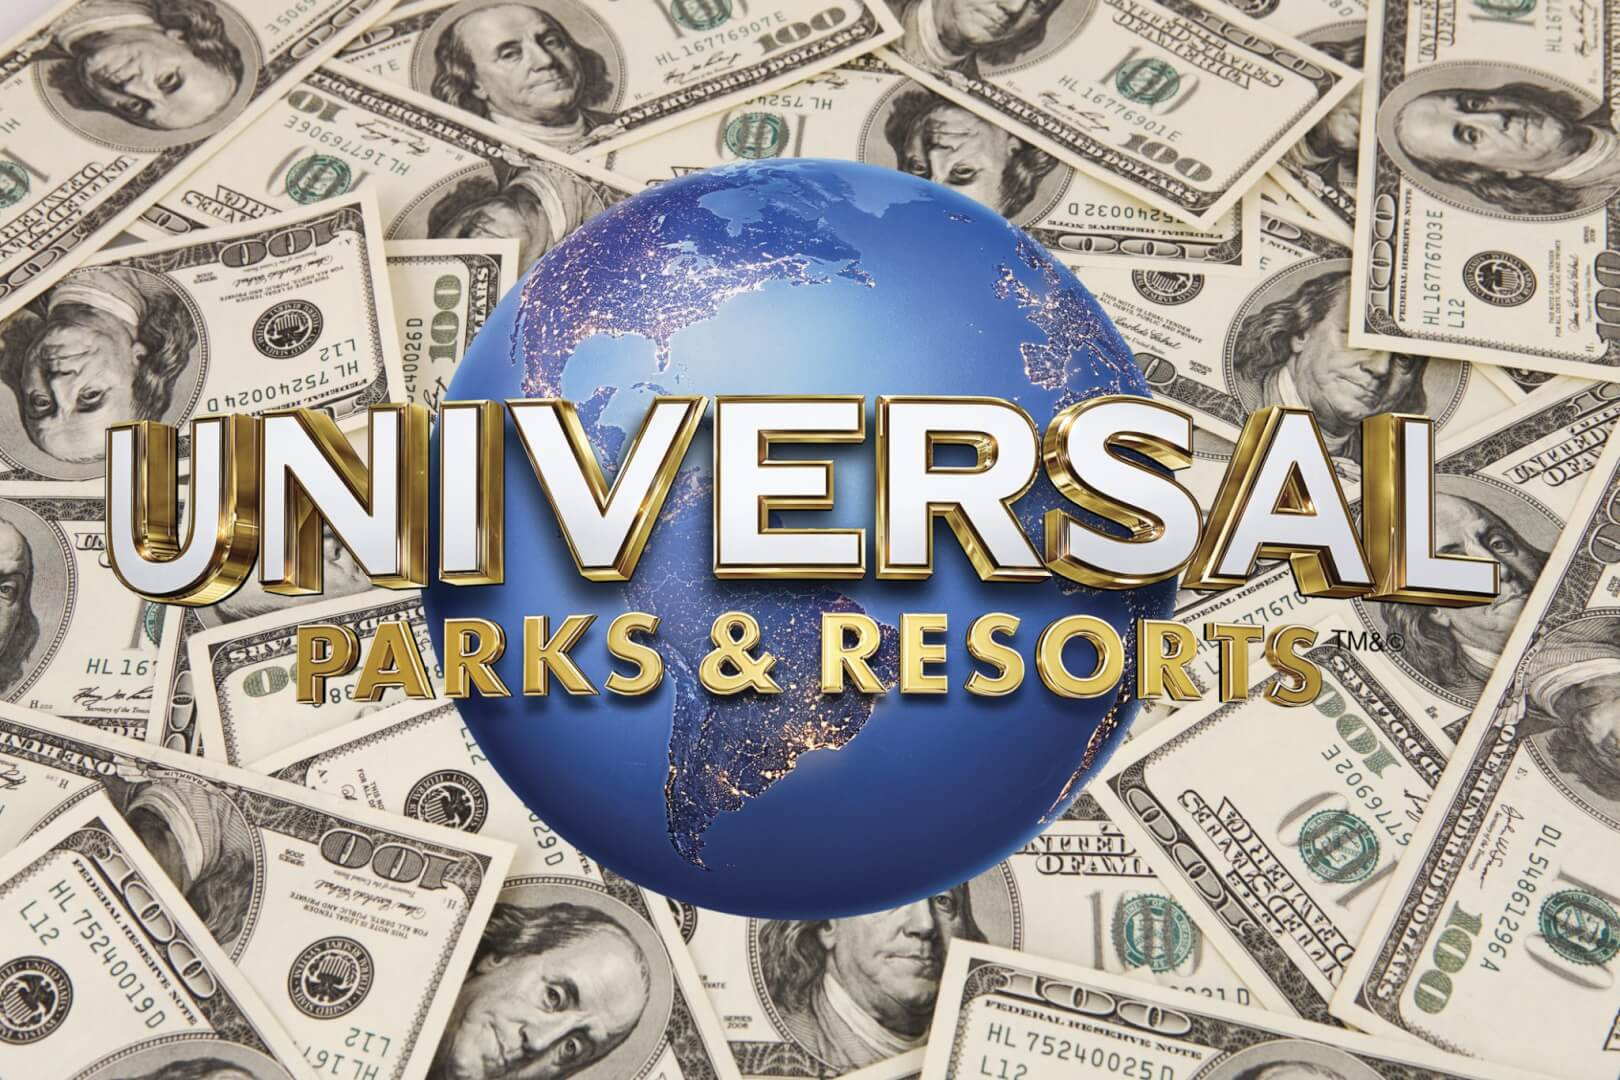 Universal Parks & Resorts issues $1,000 bonus to Team Members as part of  Comcast NBCUniversal family | Inside the Magic